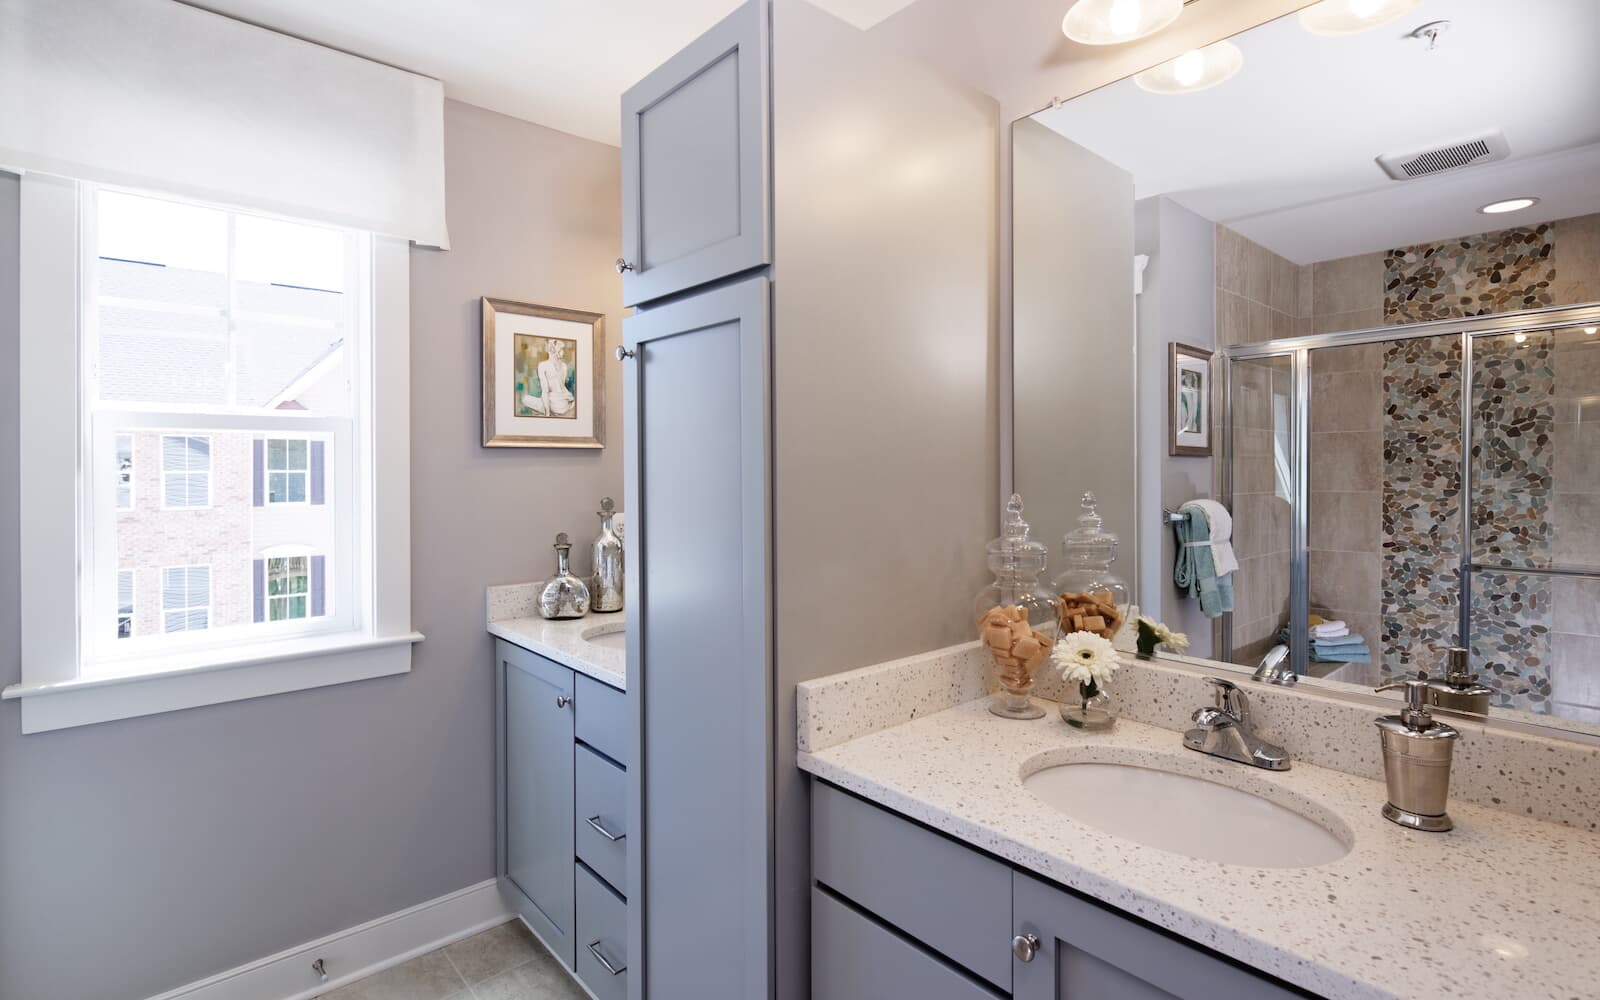 CamdenII-bathroom-townhomes-north-potomac-md-travilah-station-brookfield-residential